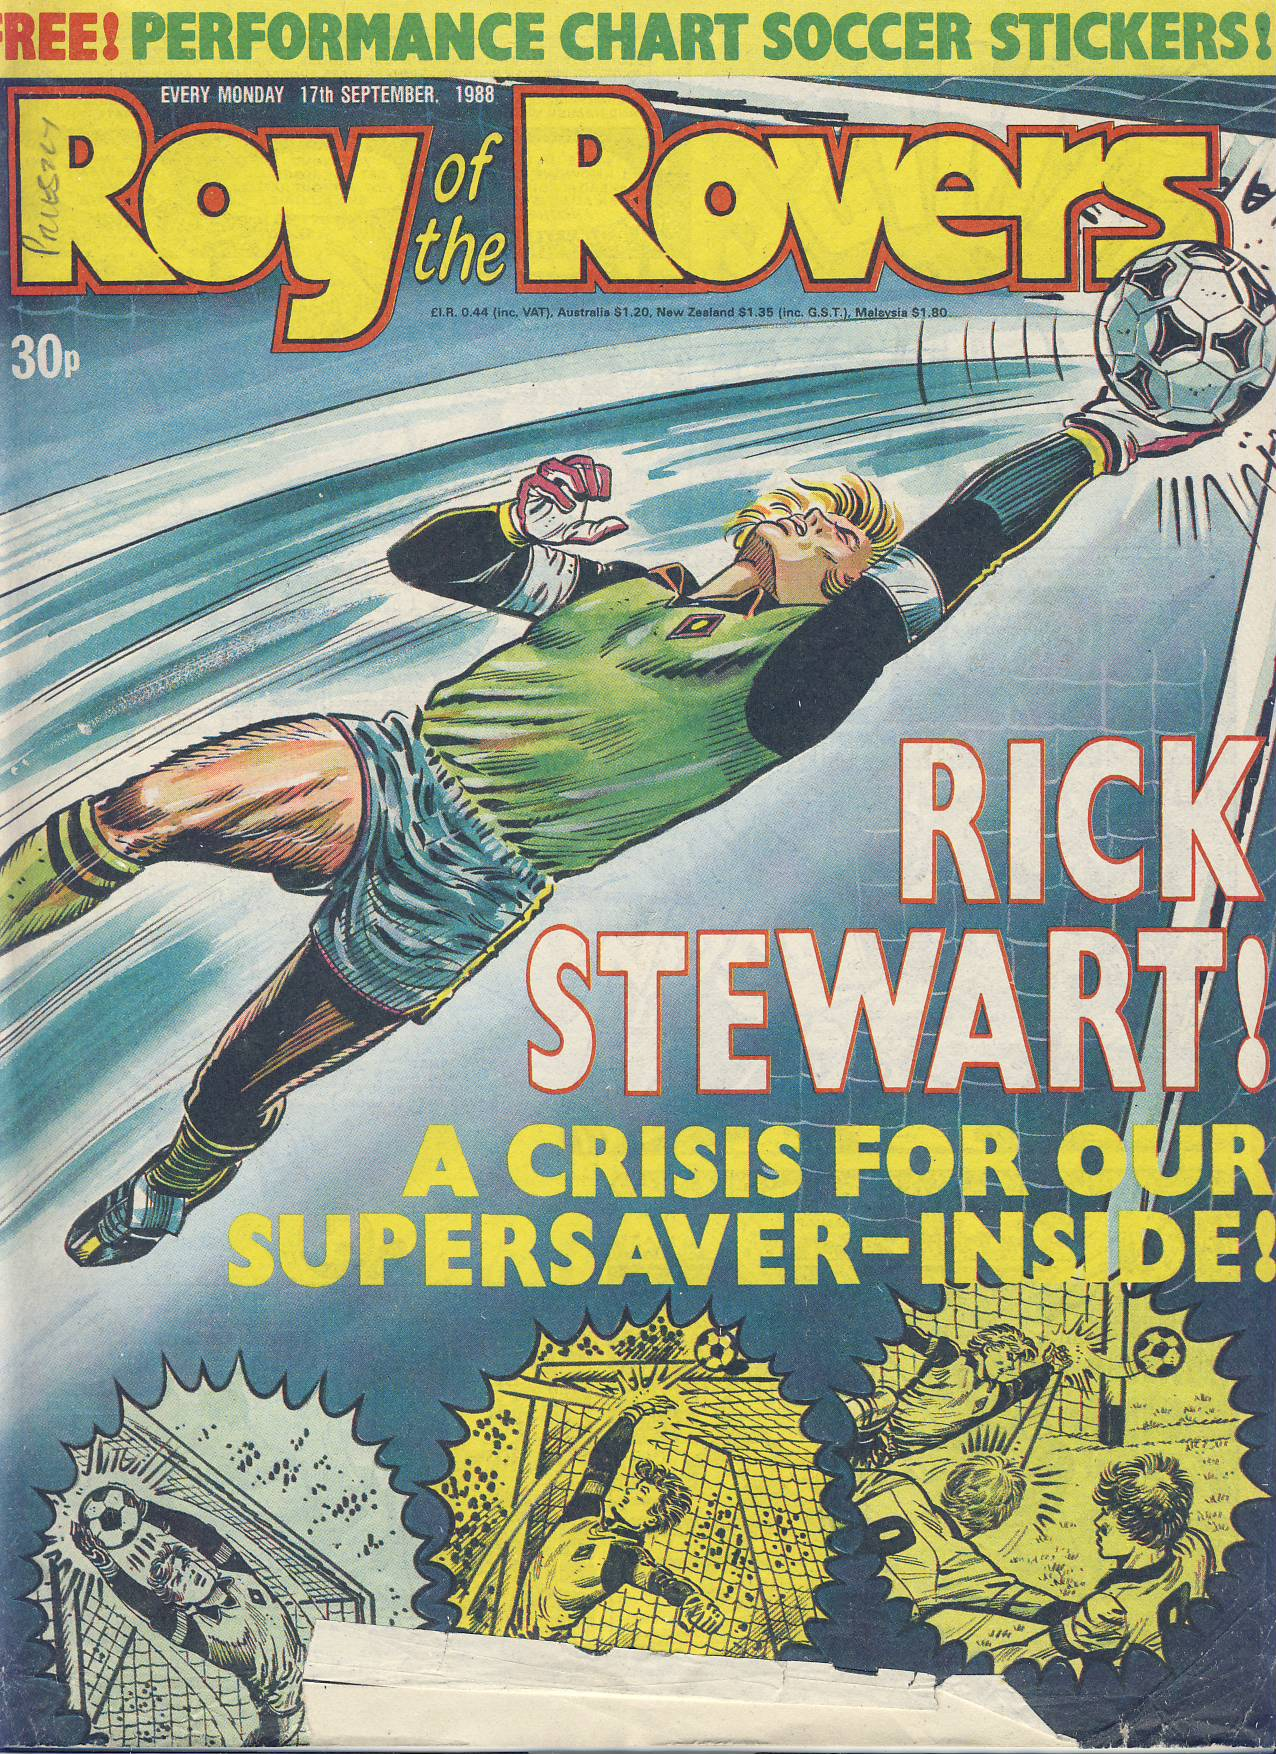 Roy of the Rovers 17th September 1988 vintage comic ref101732 a pre-owned item in well read condition.